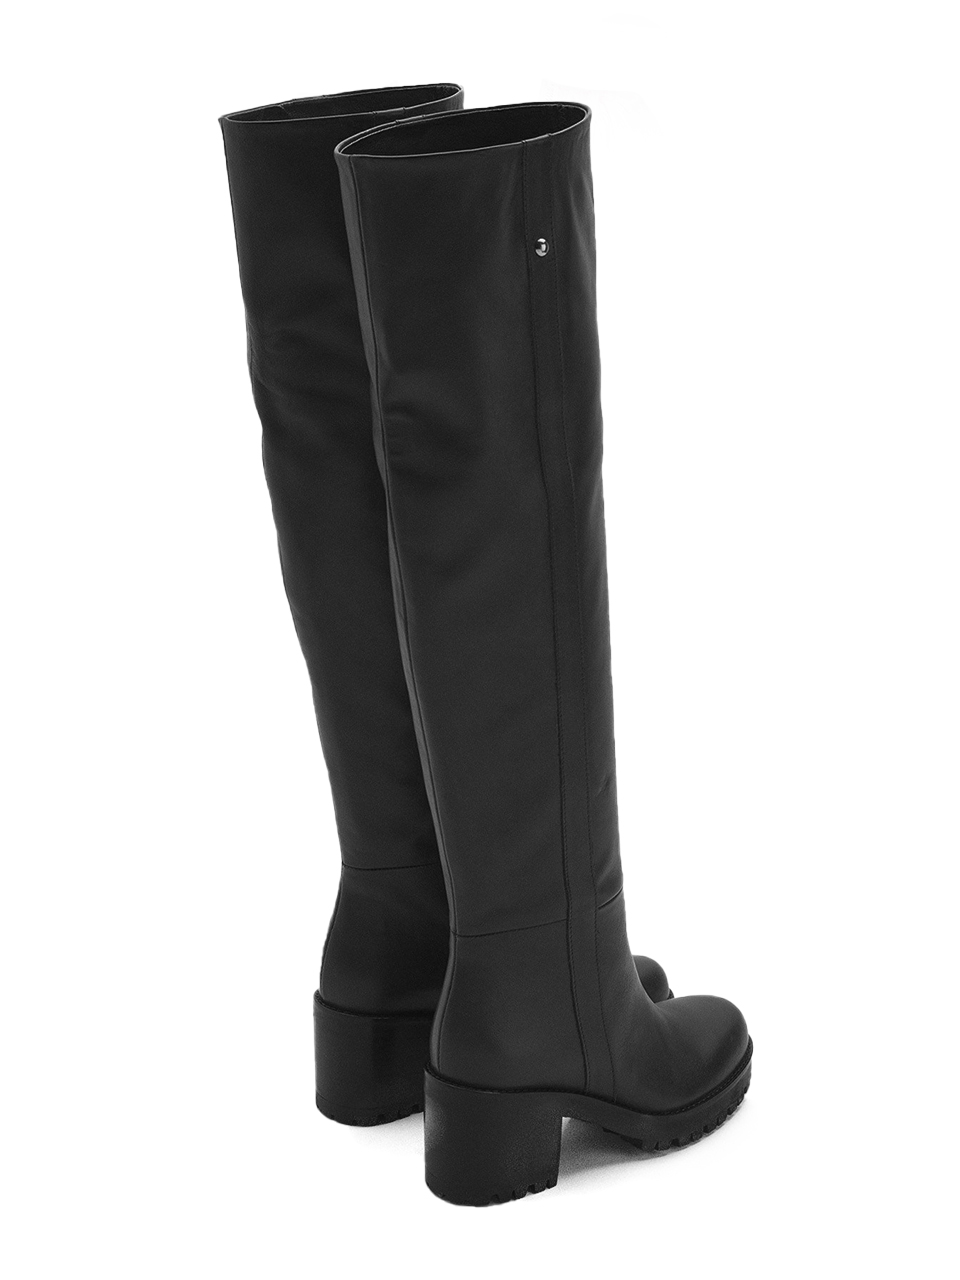 Ottod'Ame High Leg Boots in Black Back